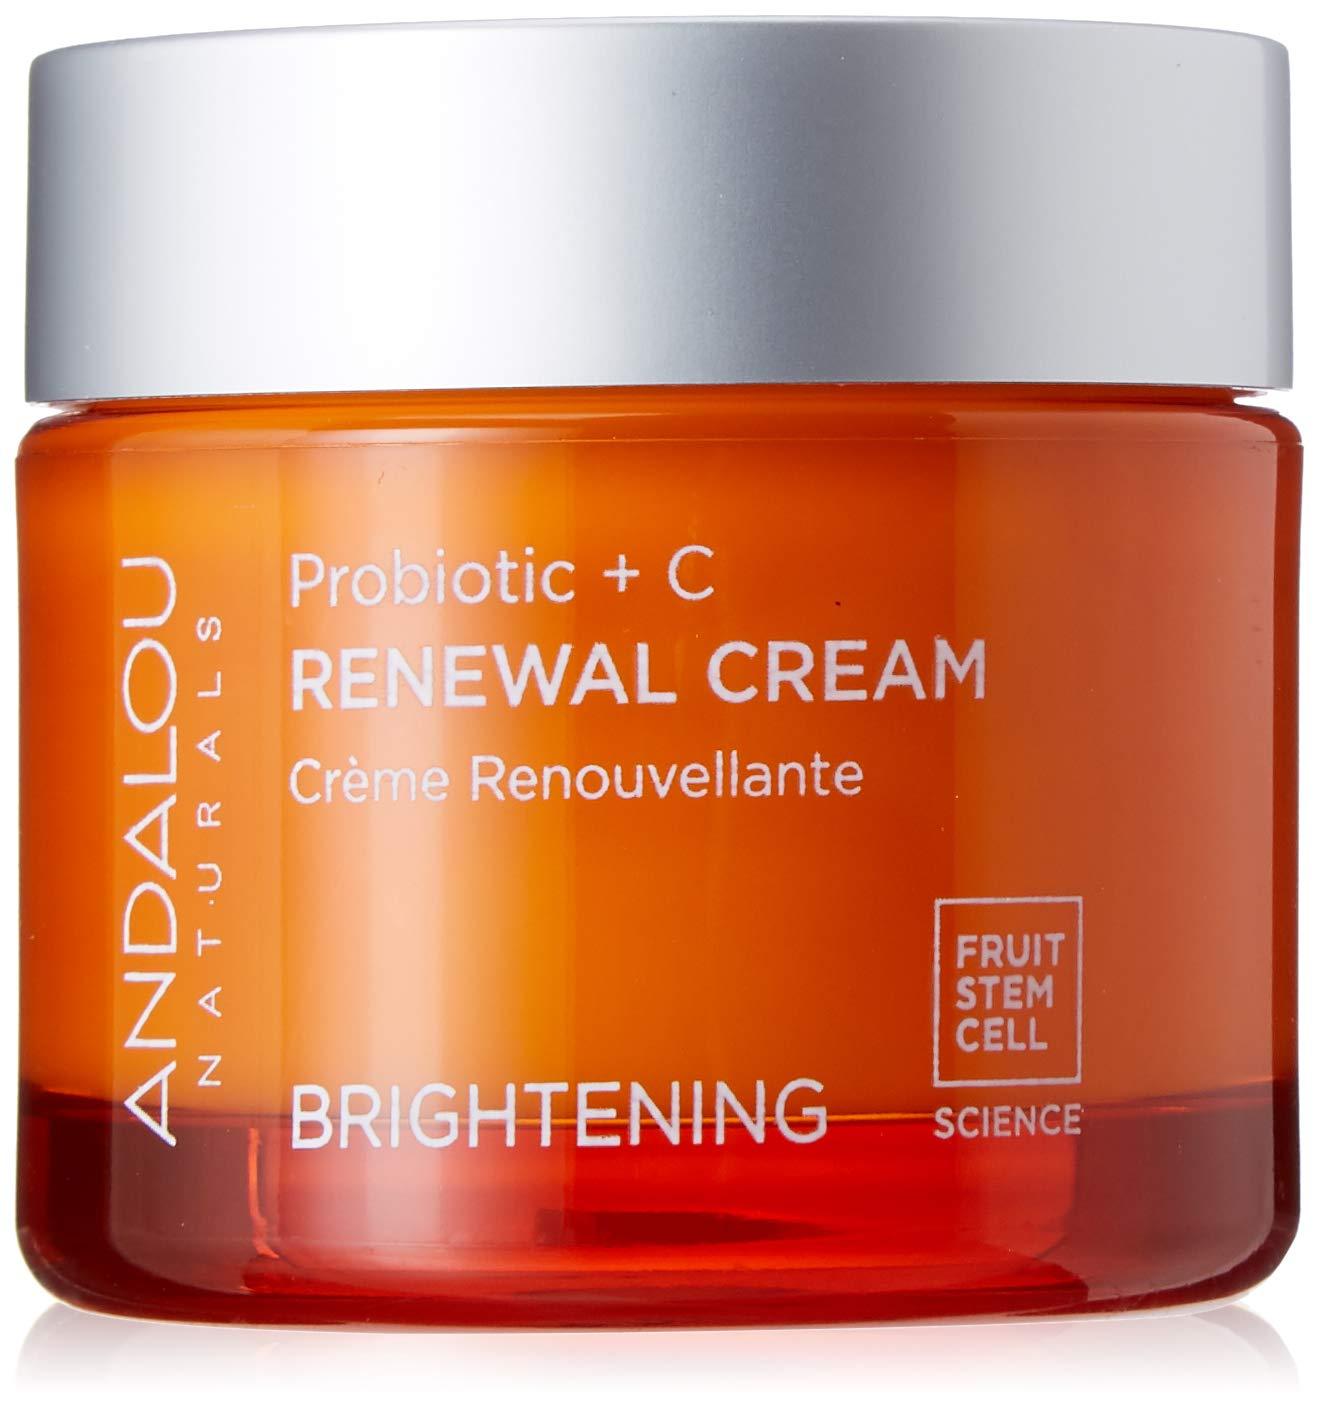 Andalou Naturals Brightening Probiotic + C Renewal Cream